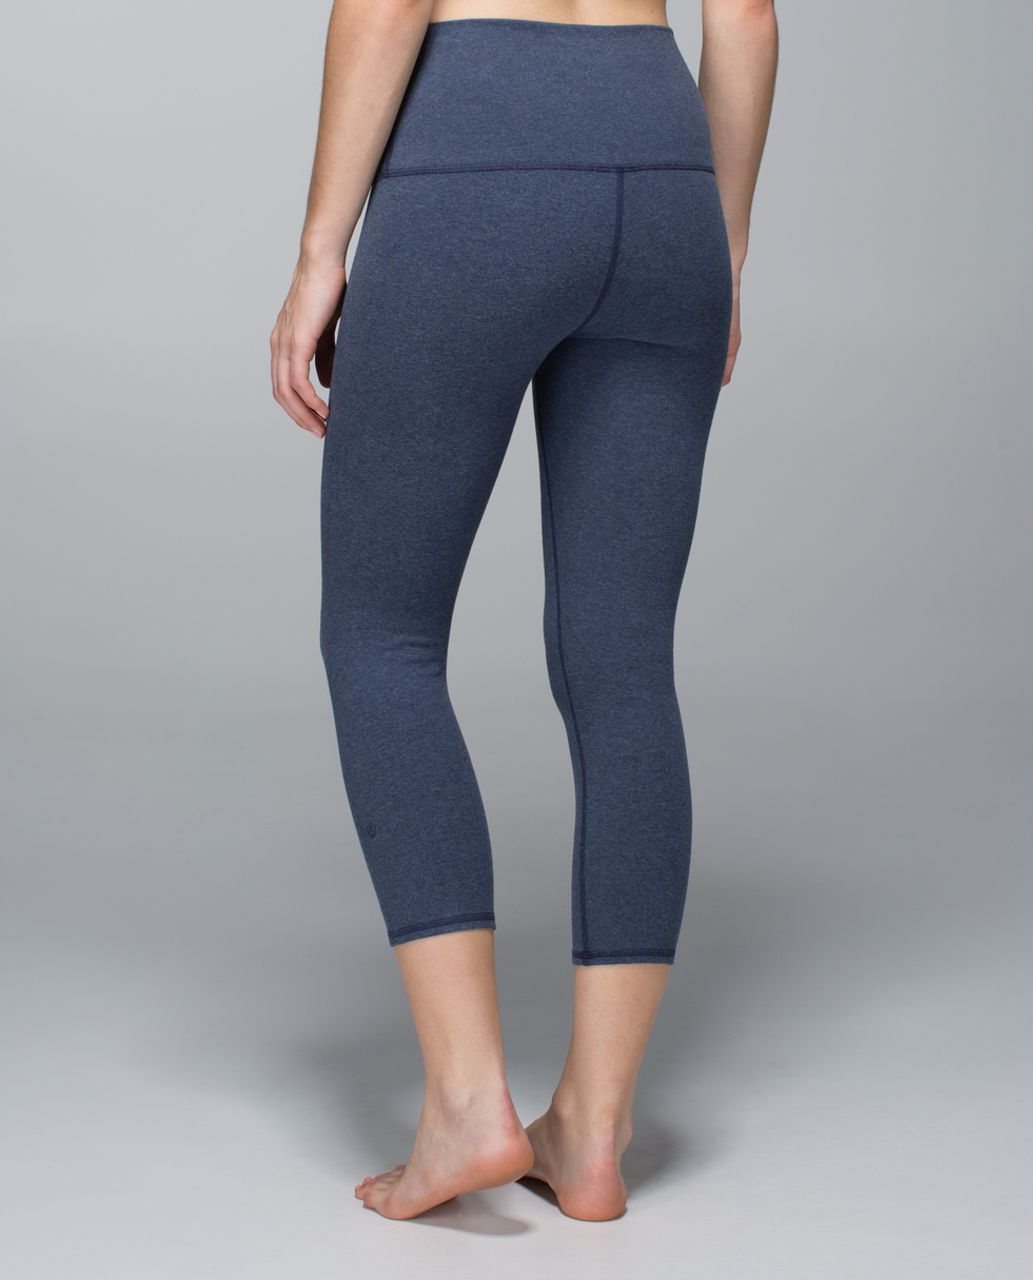 Lululemon Wunder Under Crop *Cotton (Roll Down) - Heathered Cadet Blue